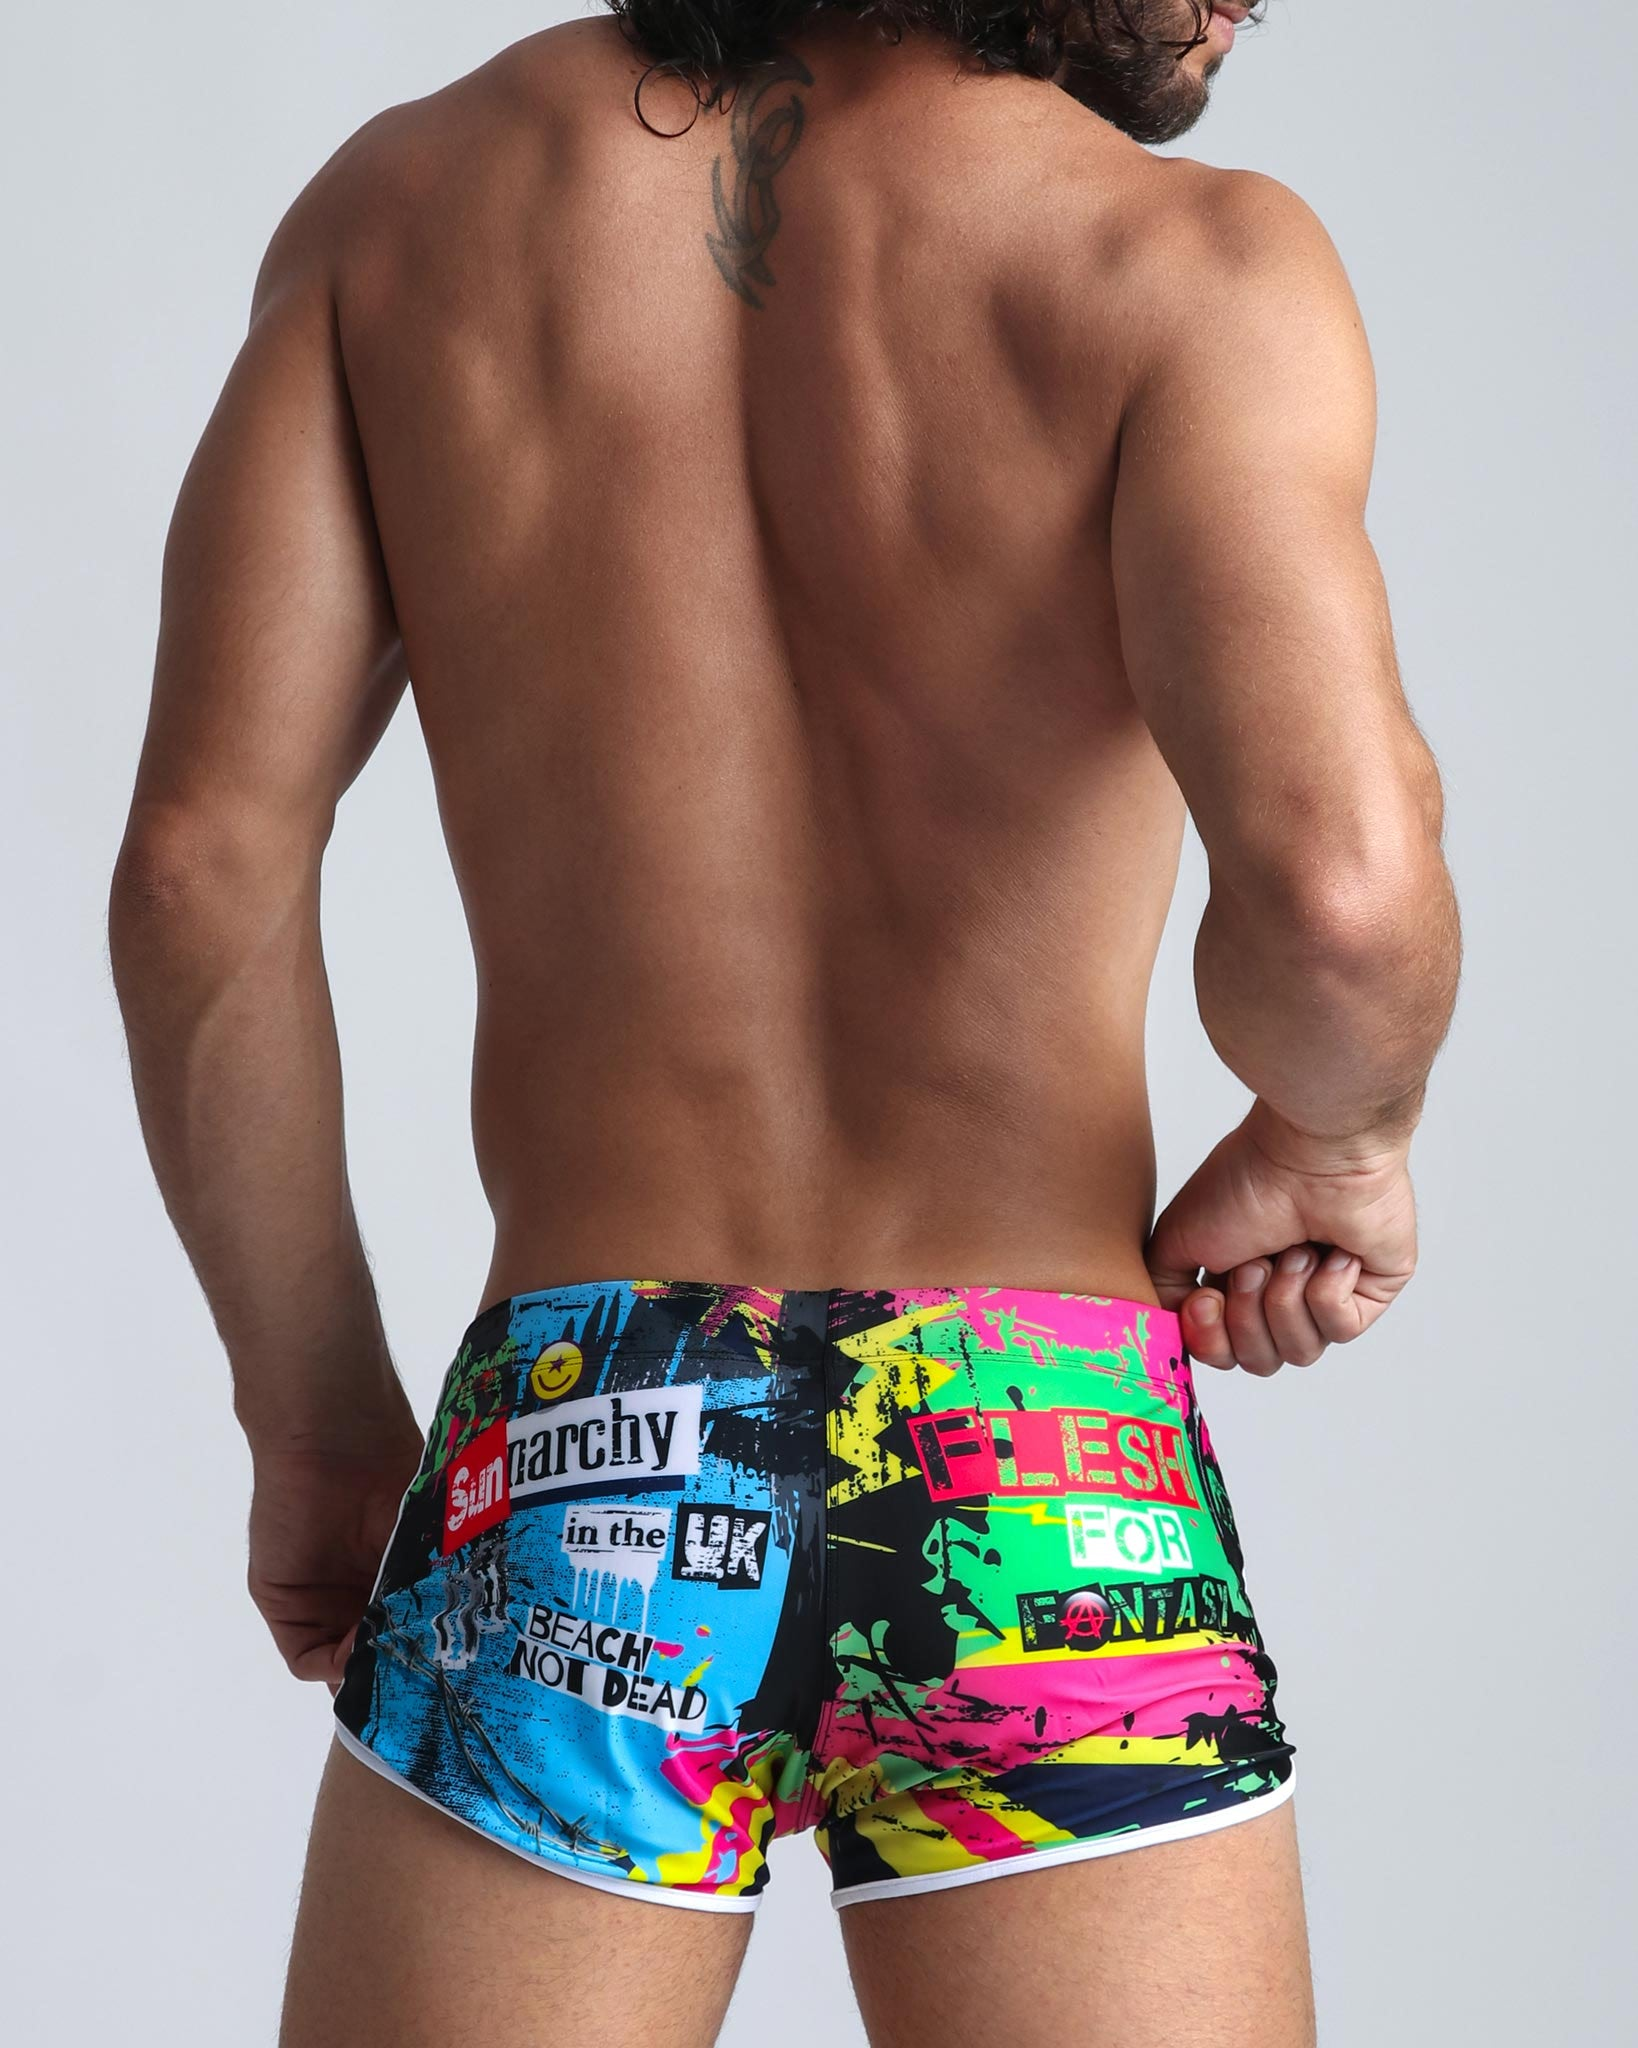 Sunnarchy Swim Shorts Bang Clothes Men Swimwear Swimsuits